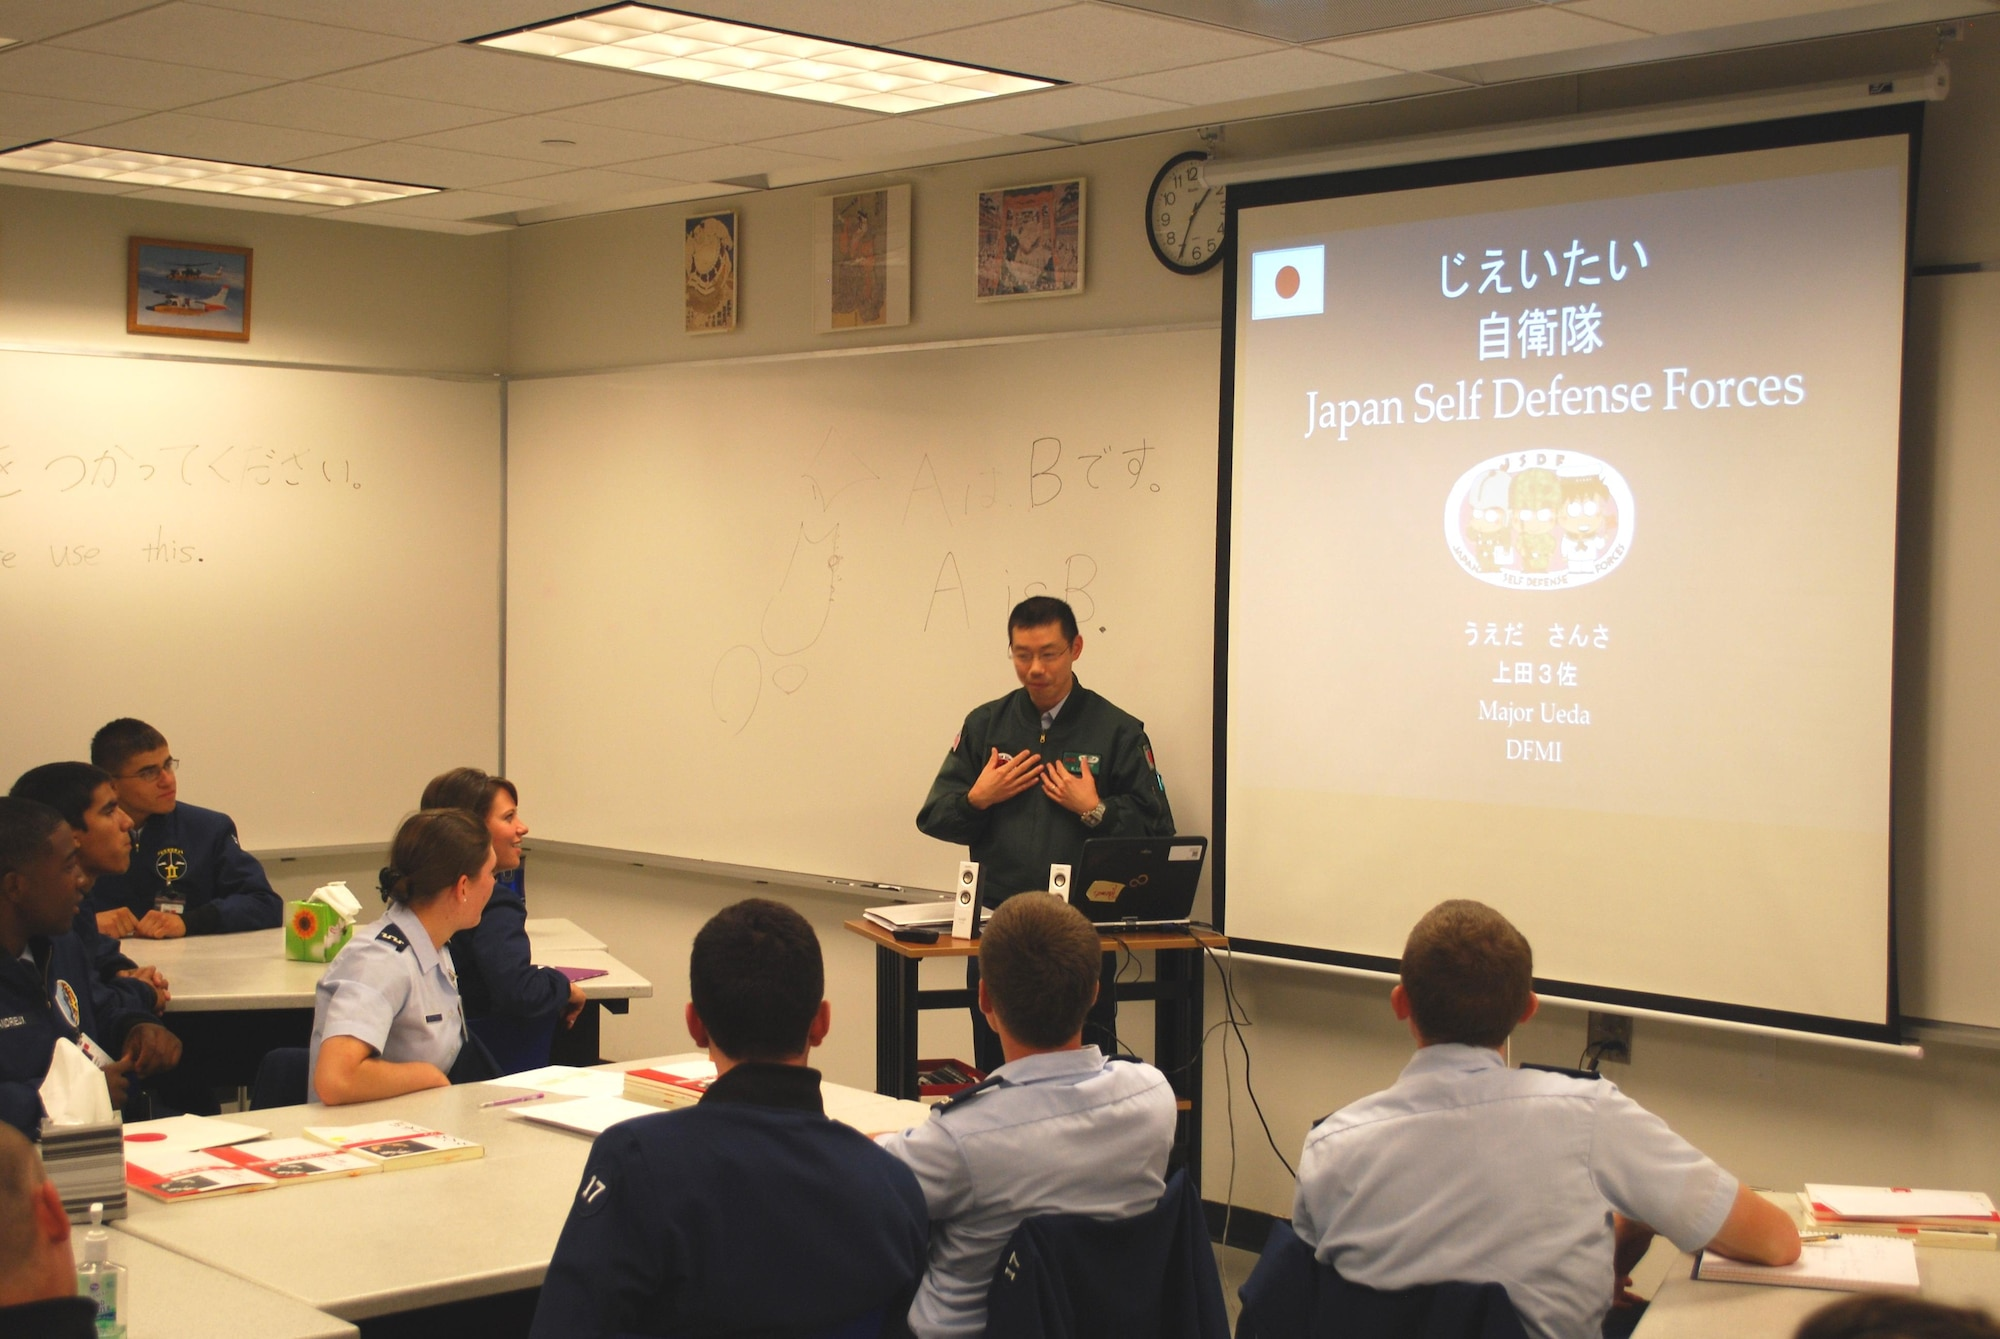 Japan Air Self-Defense Force Maj. Kazuto Ueda teaches military strategy and operations during a Japanese language class at the U.S. Air Force Academy, Colo. Every year, the Academy and Japan's National Defense Academy exchange an officer to teach military and strategic studies for two years. Ueda, the Academy's 17th Japanese exchange officer, arrived in 2013. (Courtesy photo)